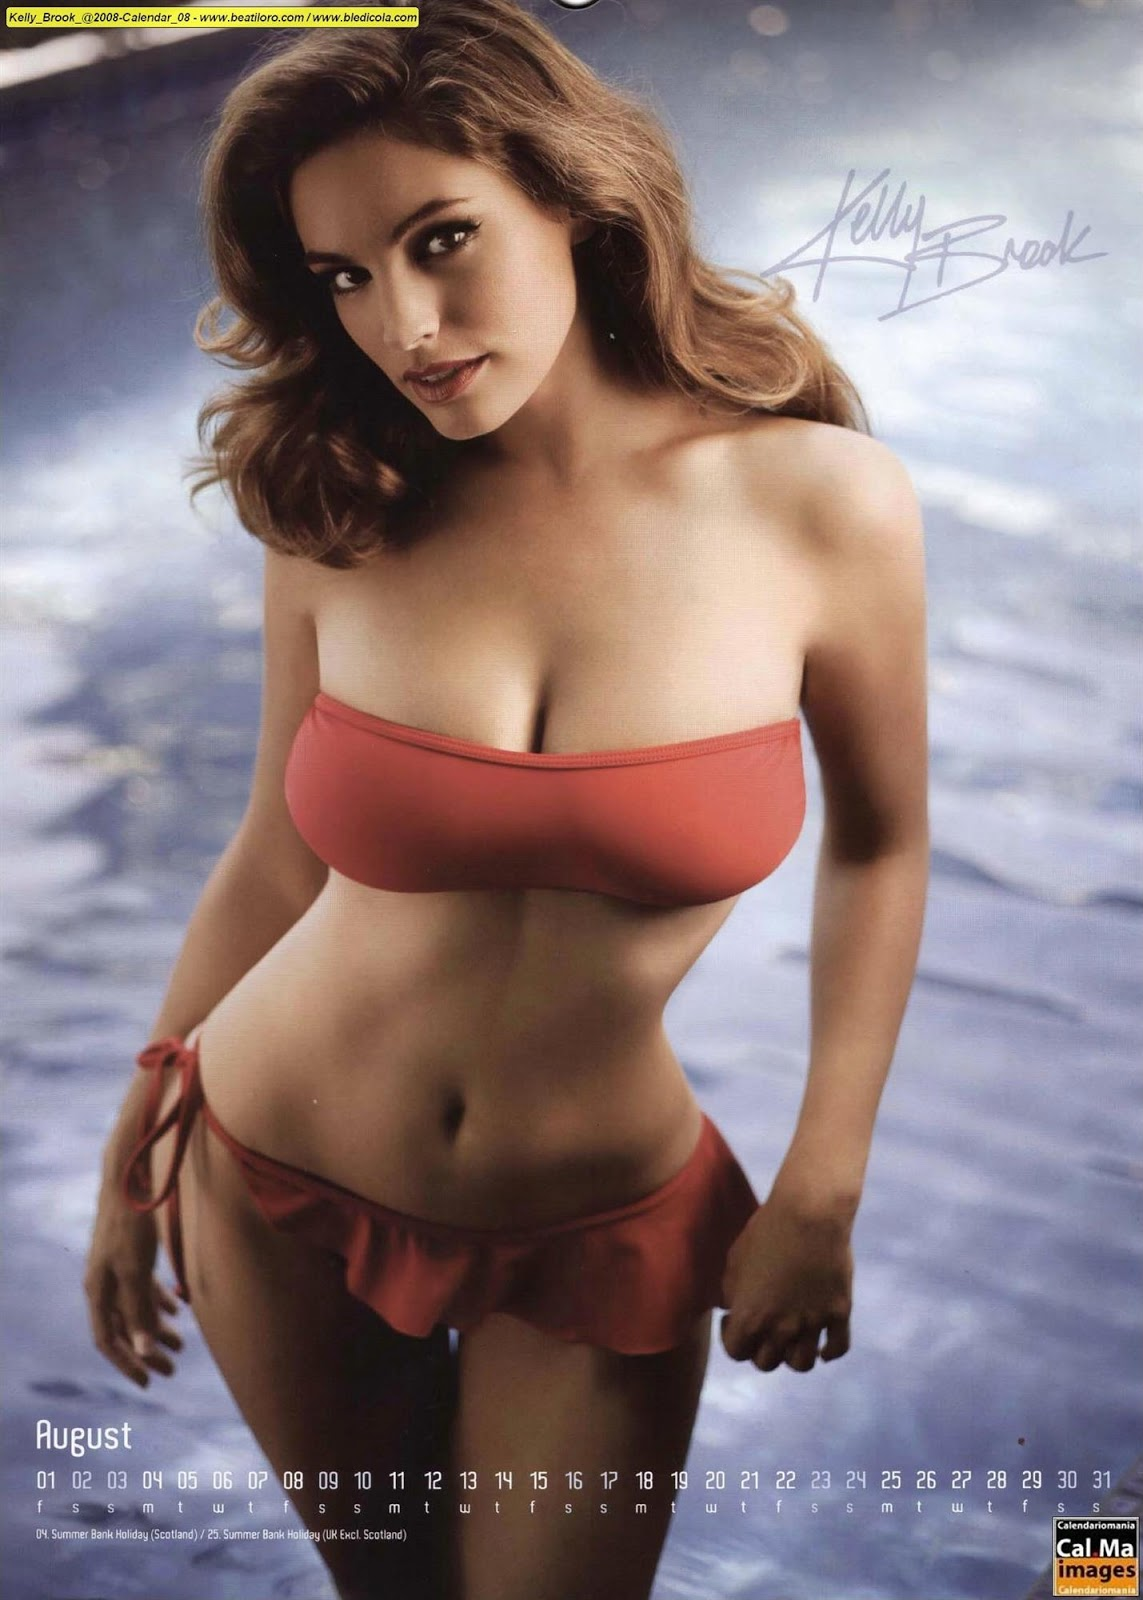 Kelly+Brook+2008+Calendar+7 18 Best Kelly Brook Photos in Swimwear